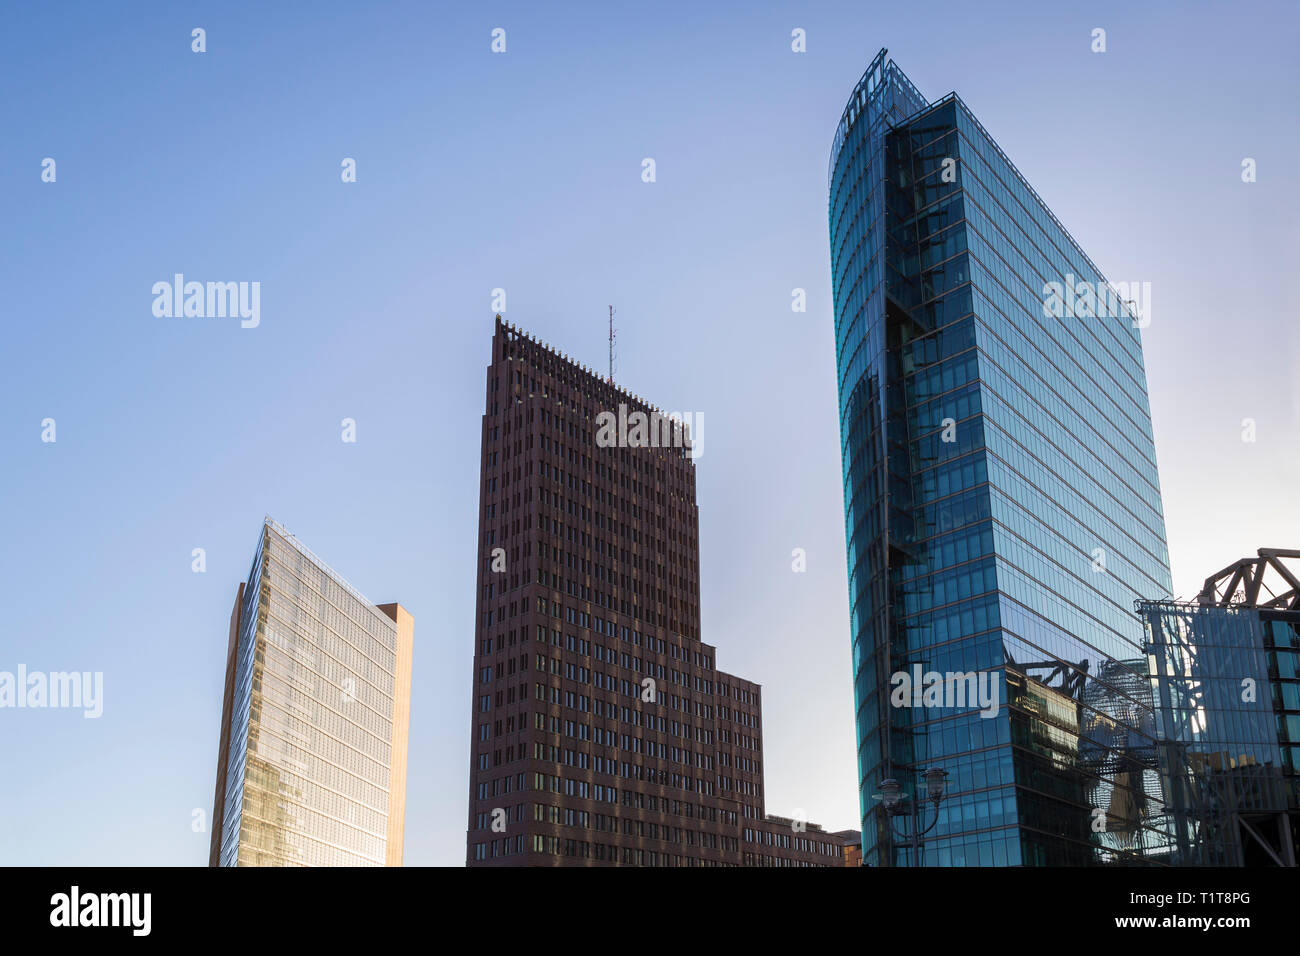 Modern high-rise buildings against clear blue sky at Potsdamer Platz in downtown Berlin, Germany, on a sunny day. Stock Photo